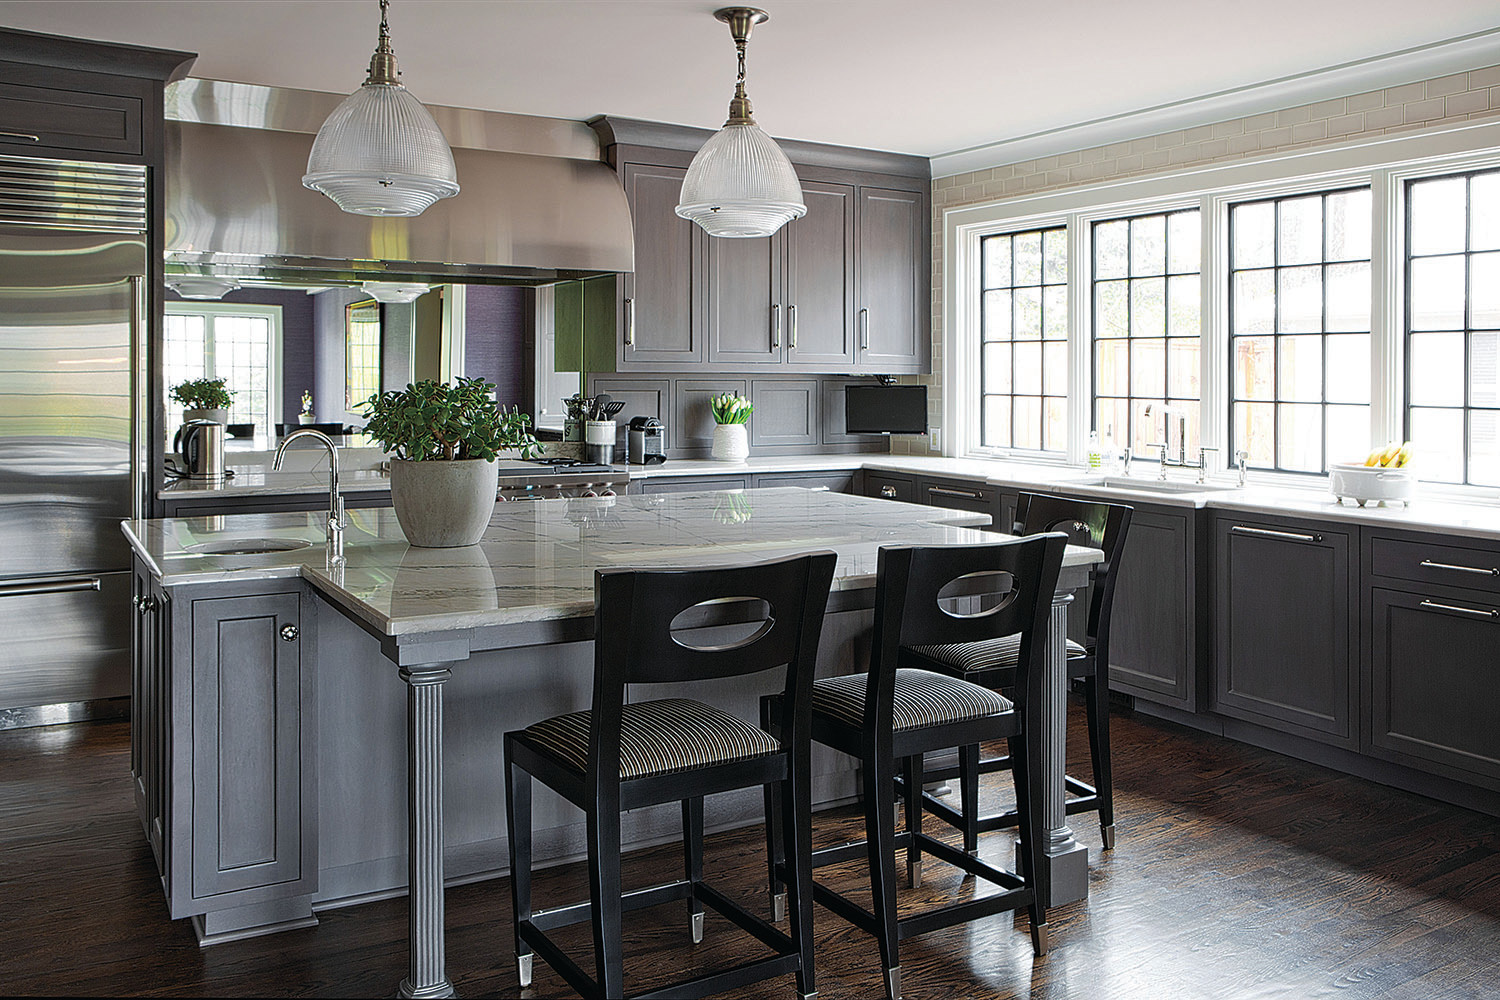 13 Exquisite Ways To Style Grey Stained Kitchen Cabinets For Every Type Of Home Kellyhogan